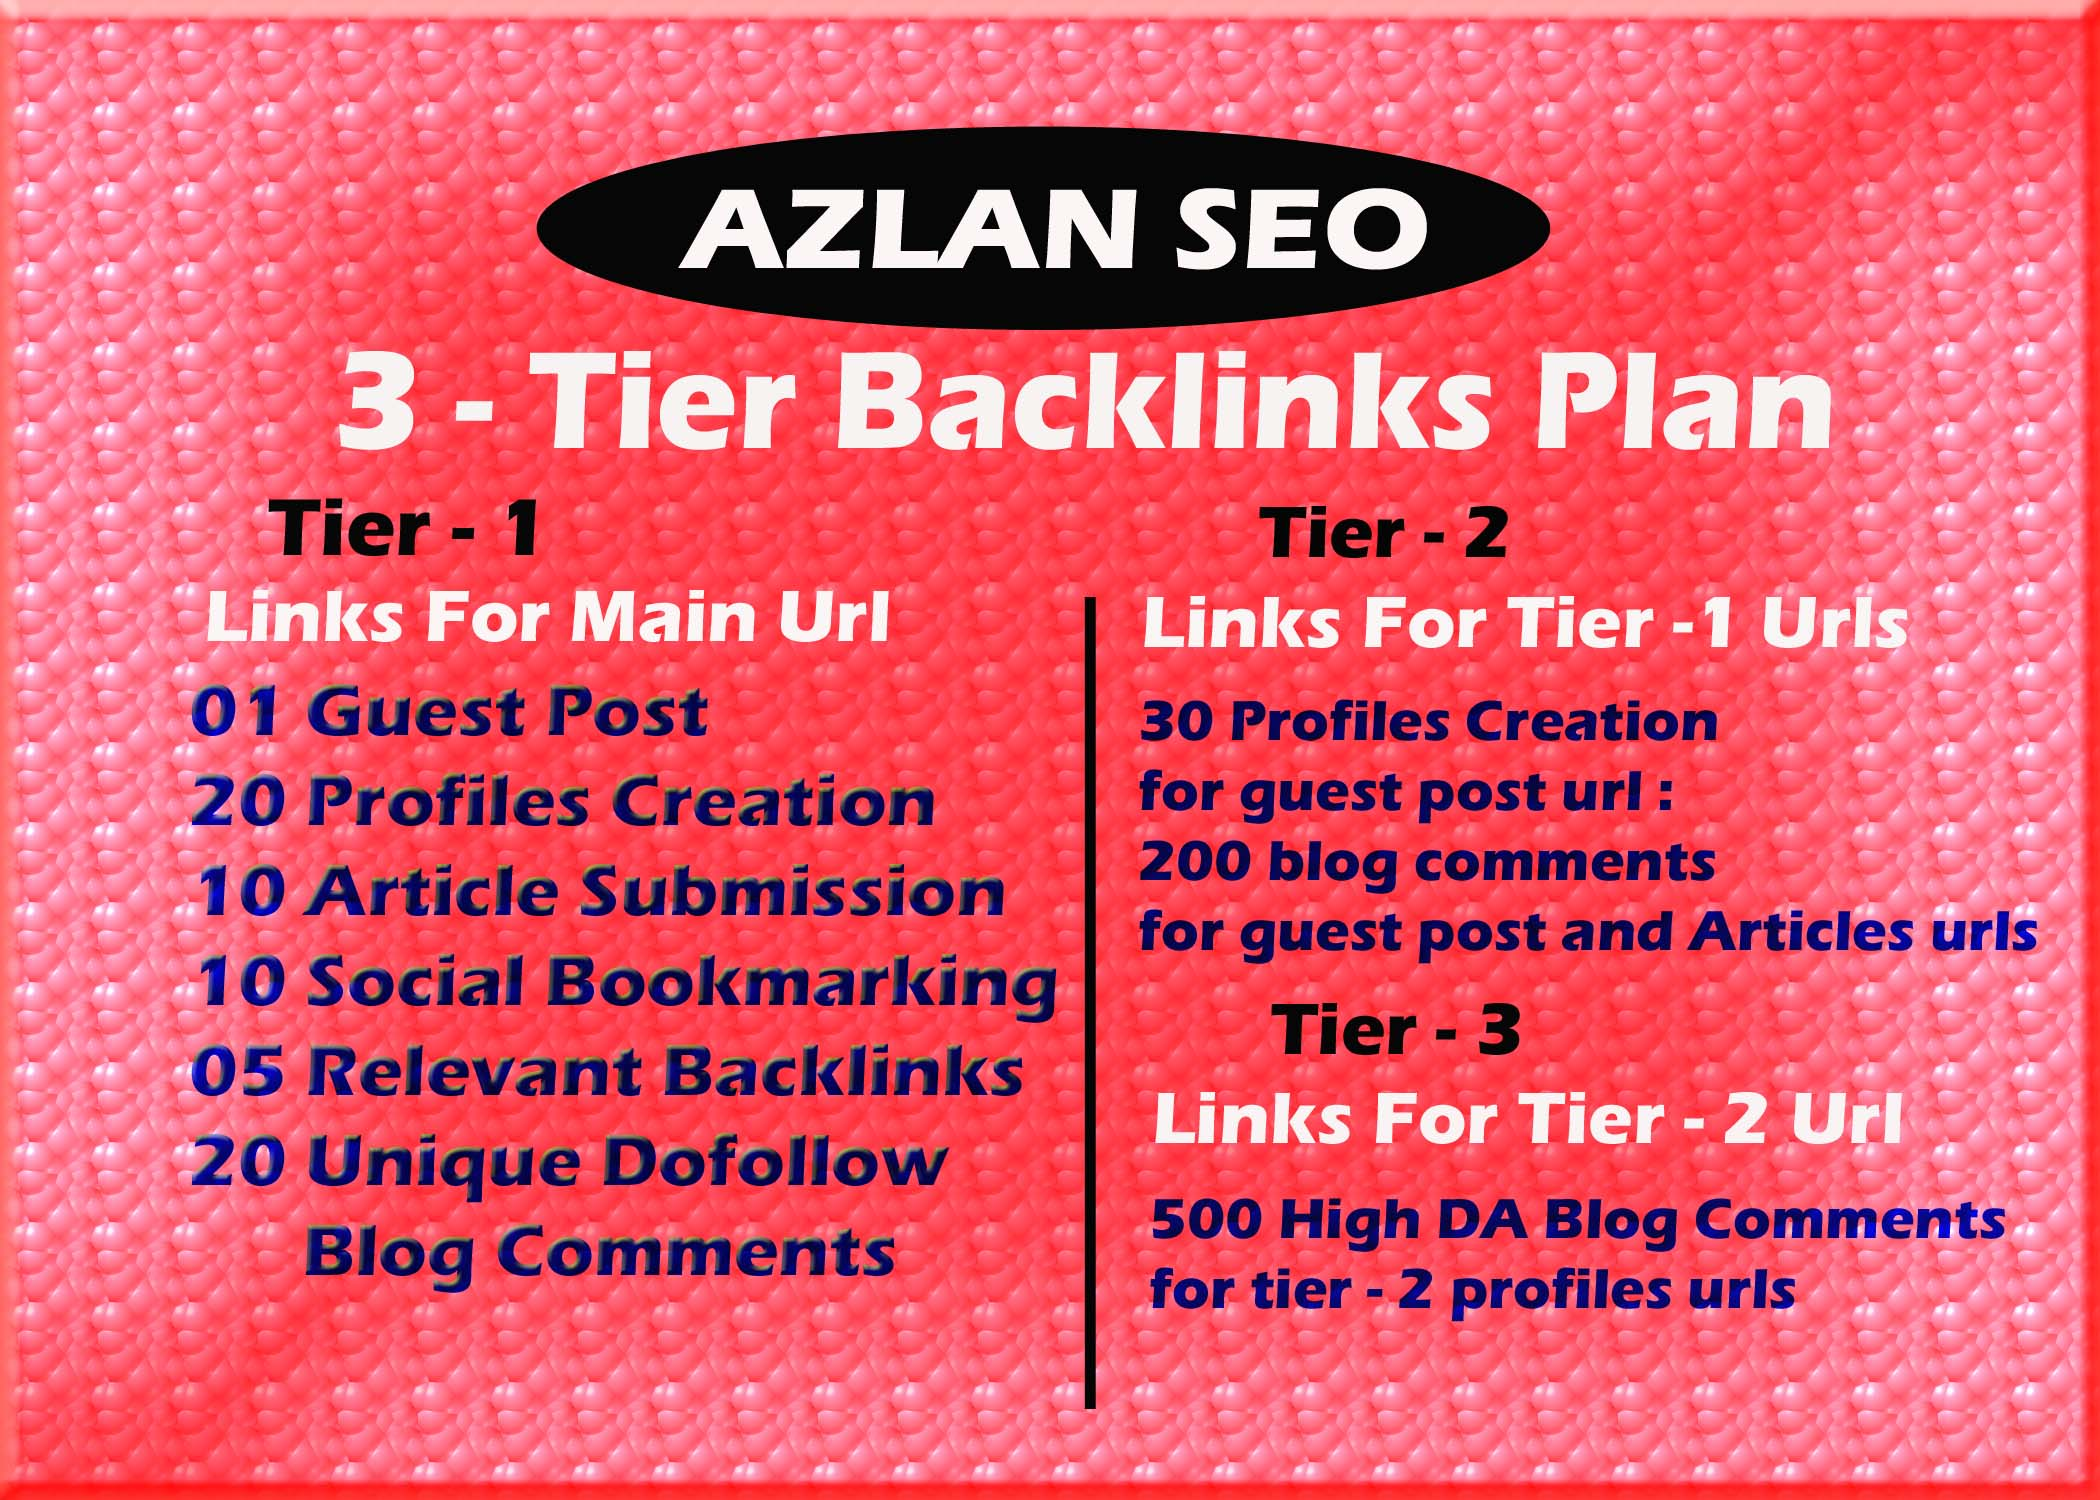 Provide Supreme 3 tier backlinks sky rocket package